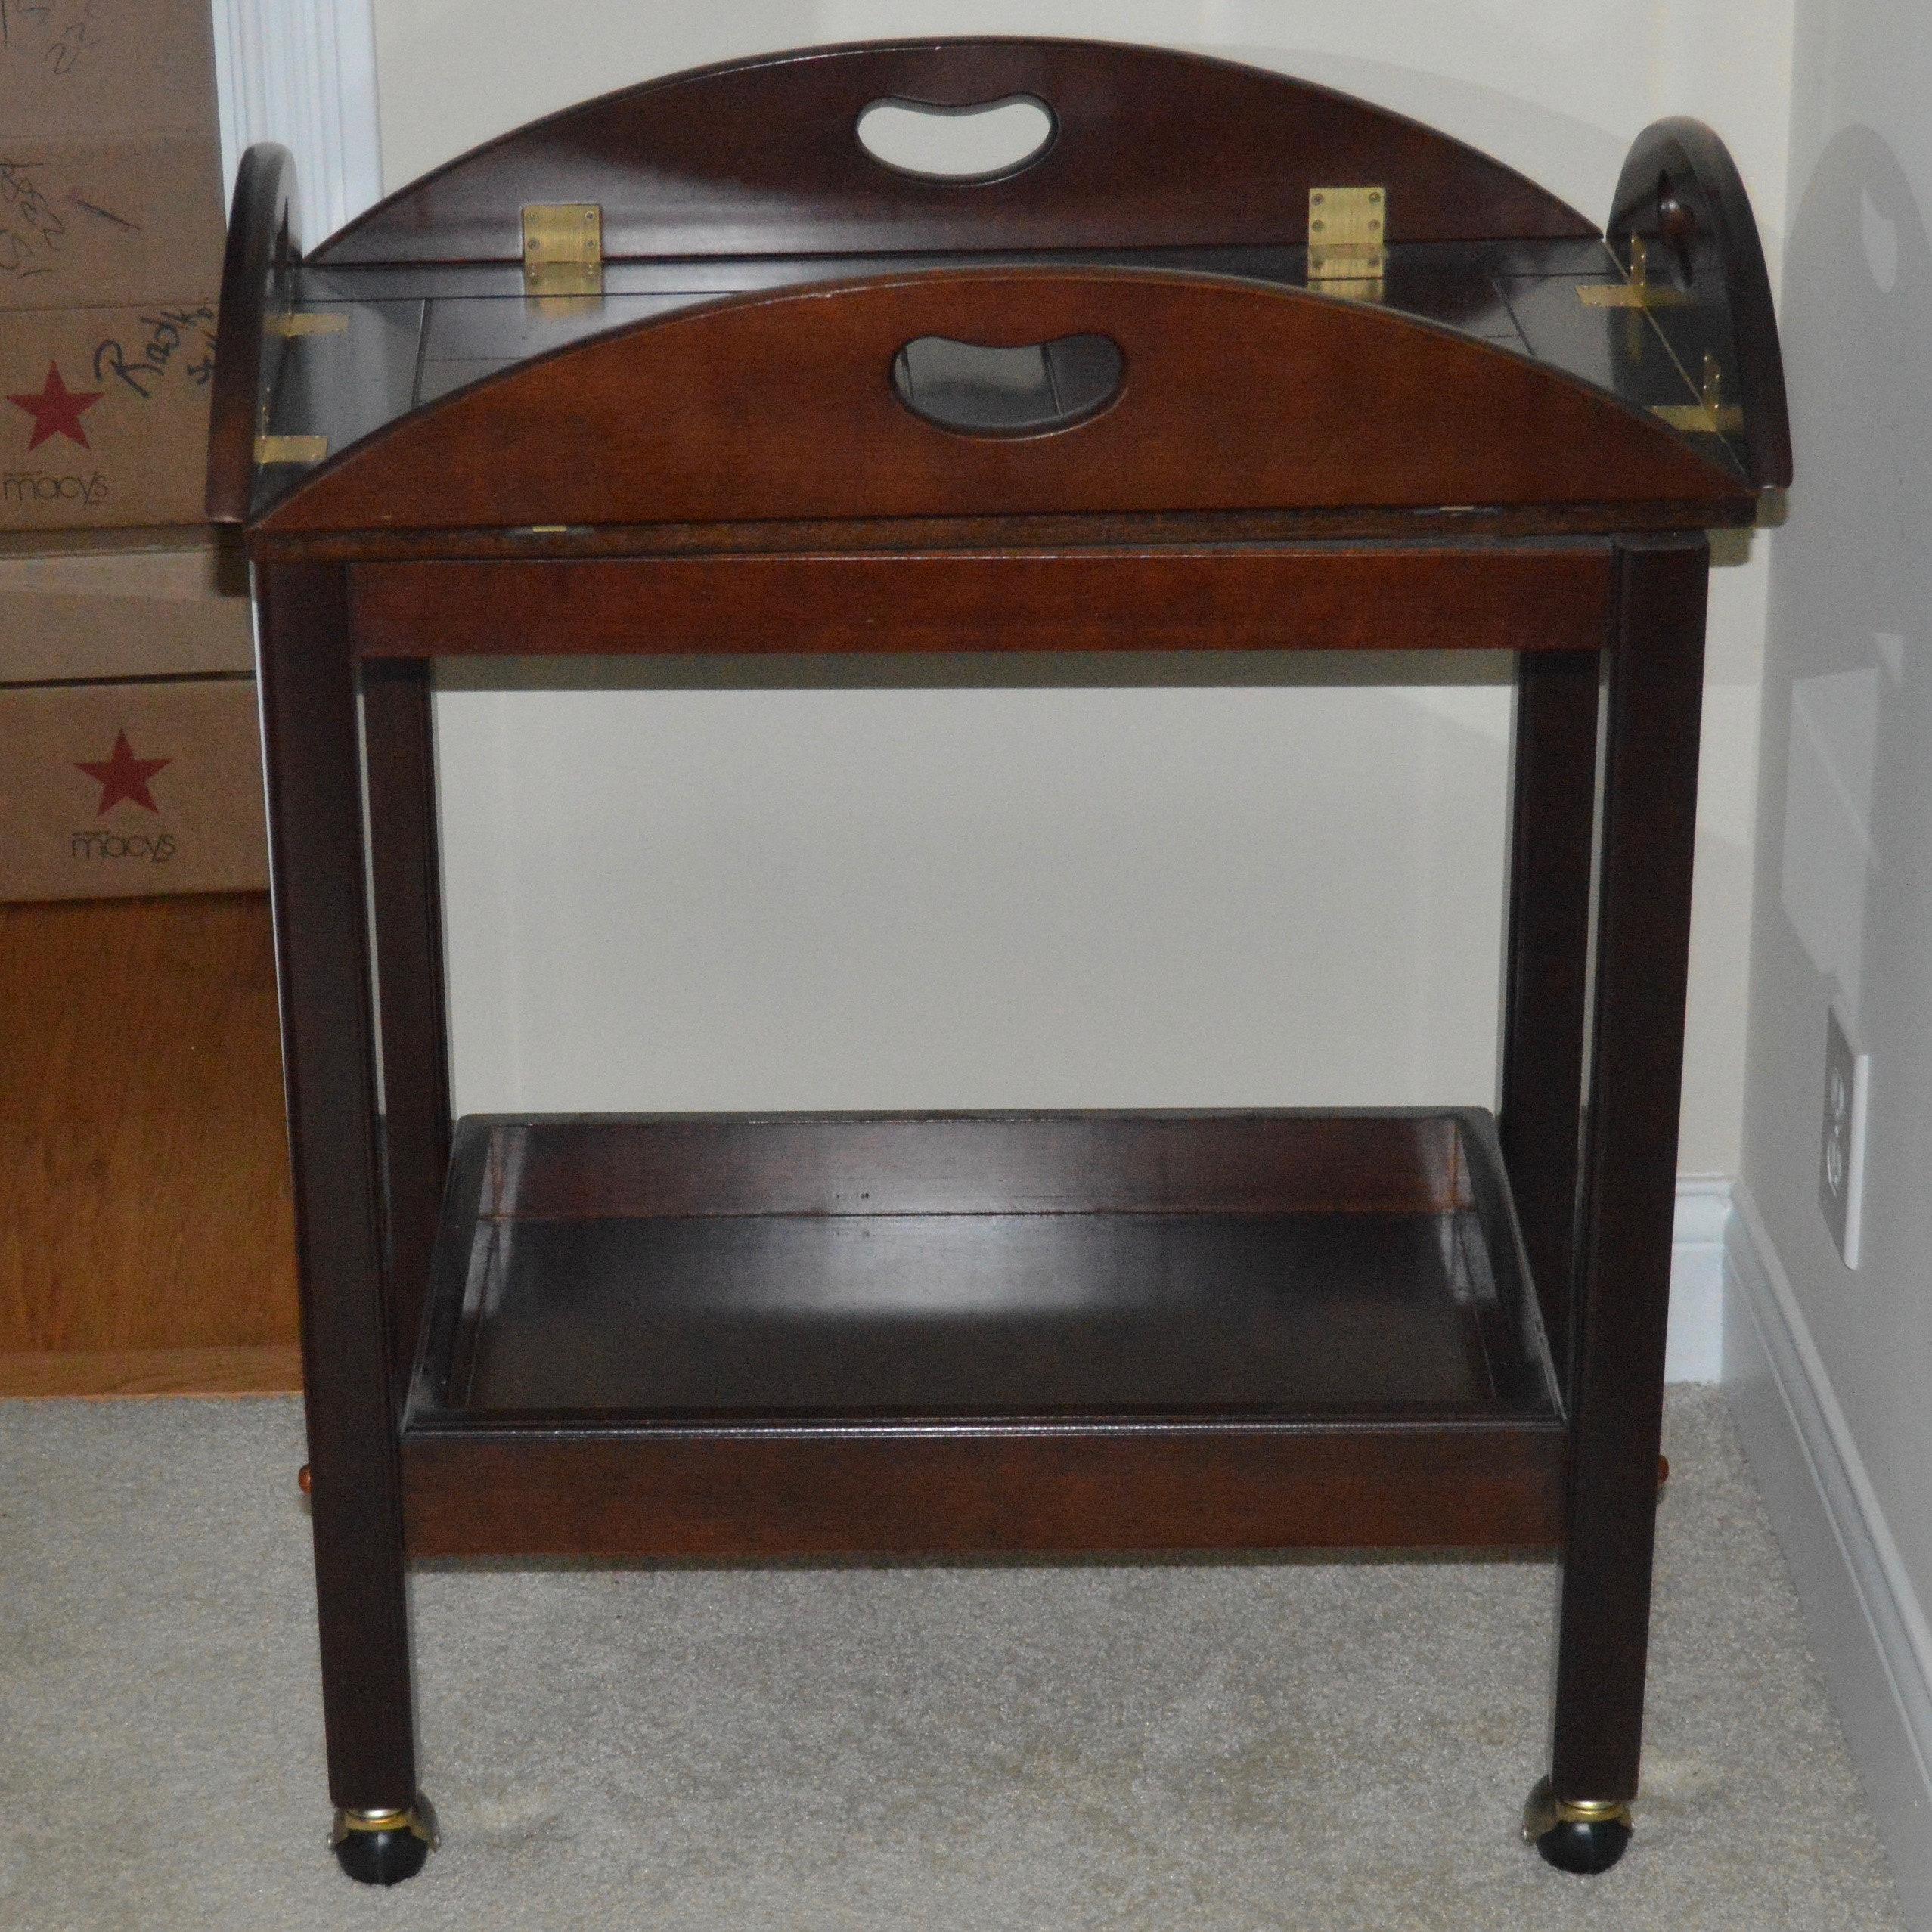 Tray Top Wooden Serving Table on Casters